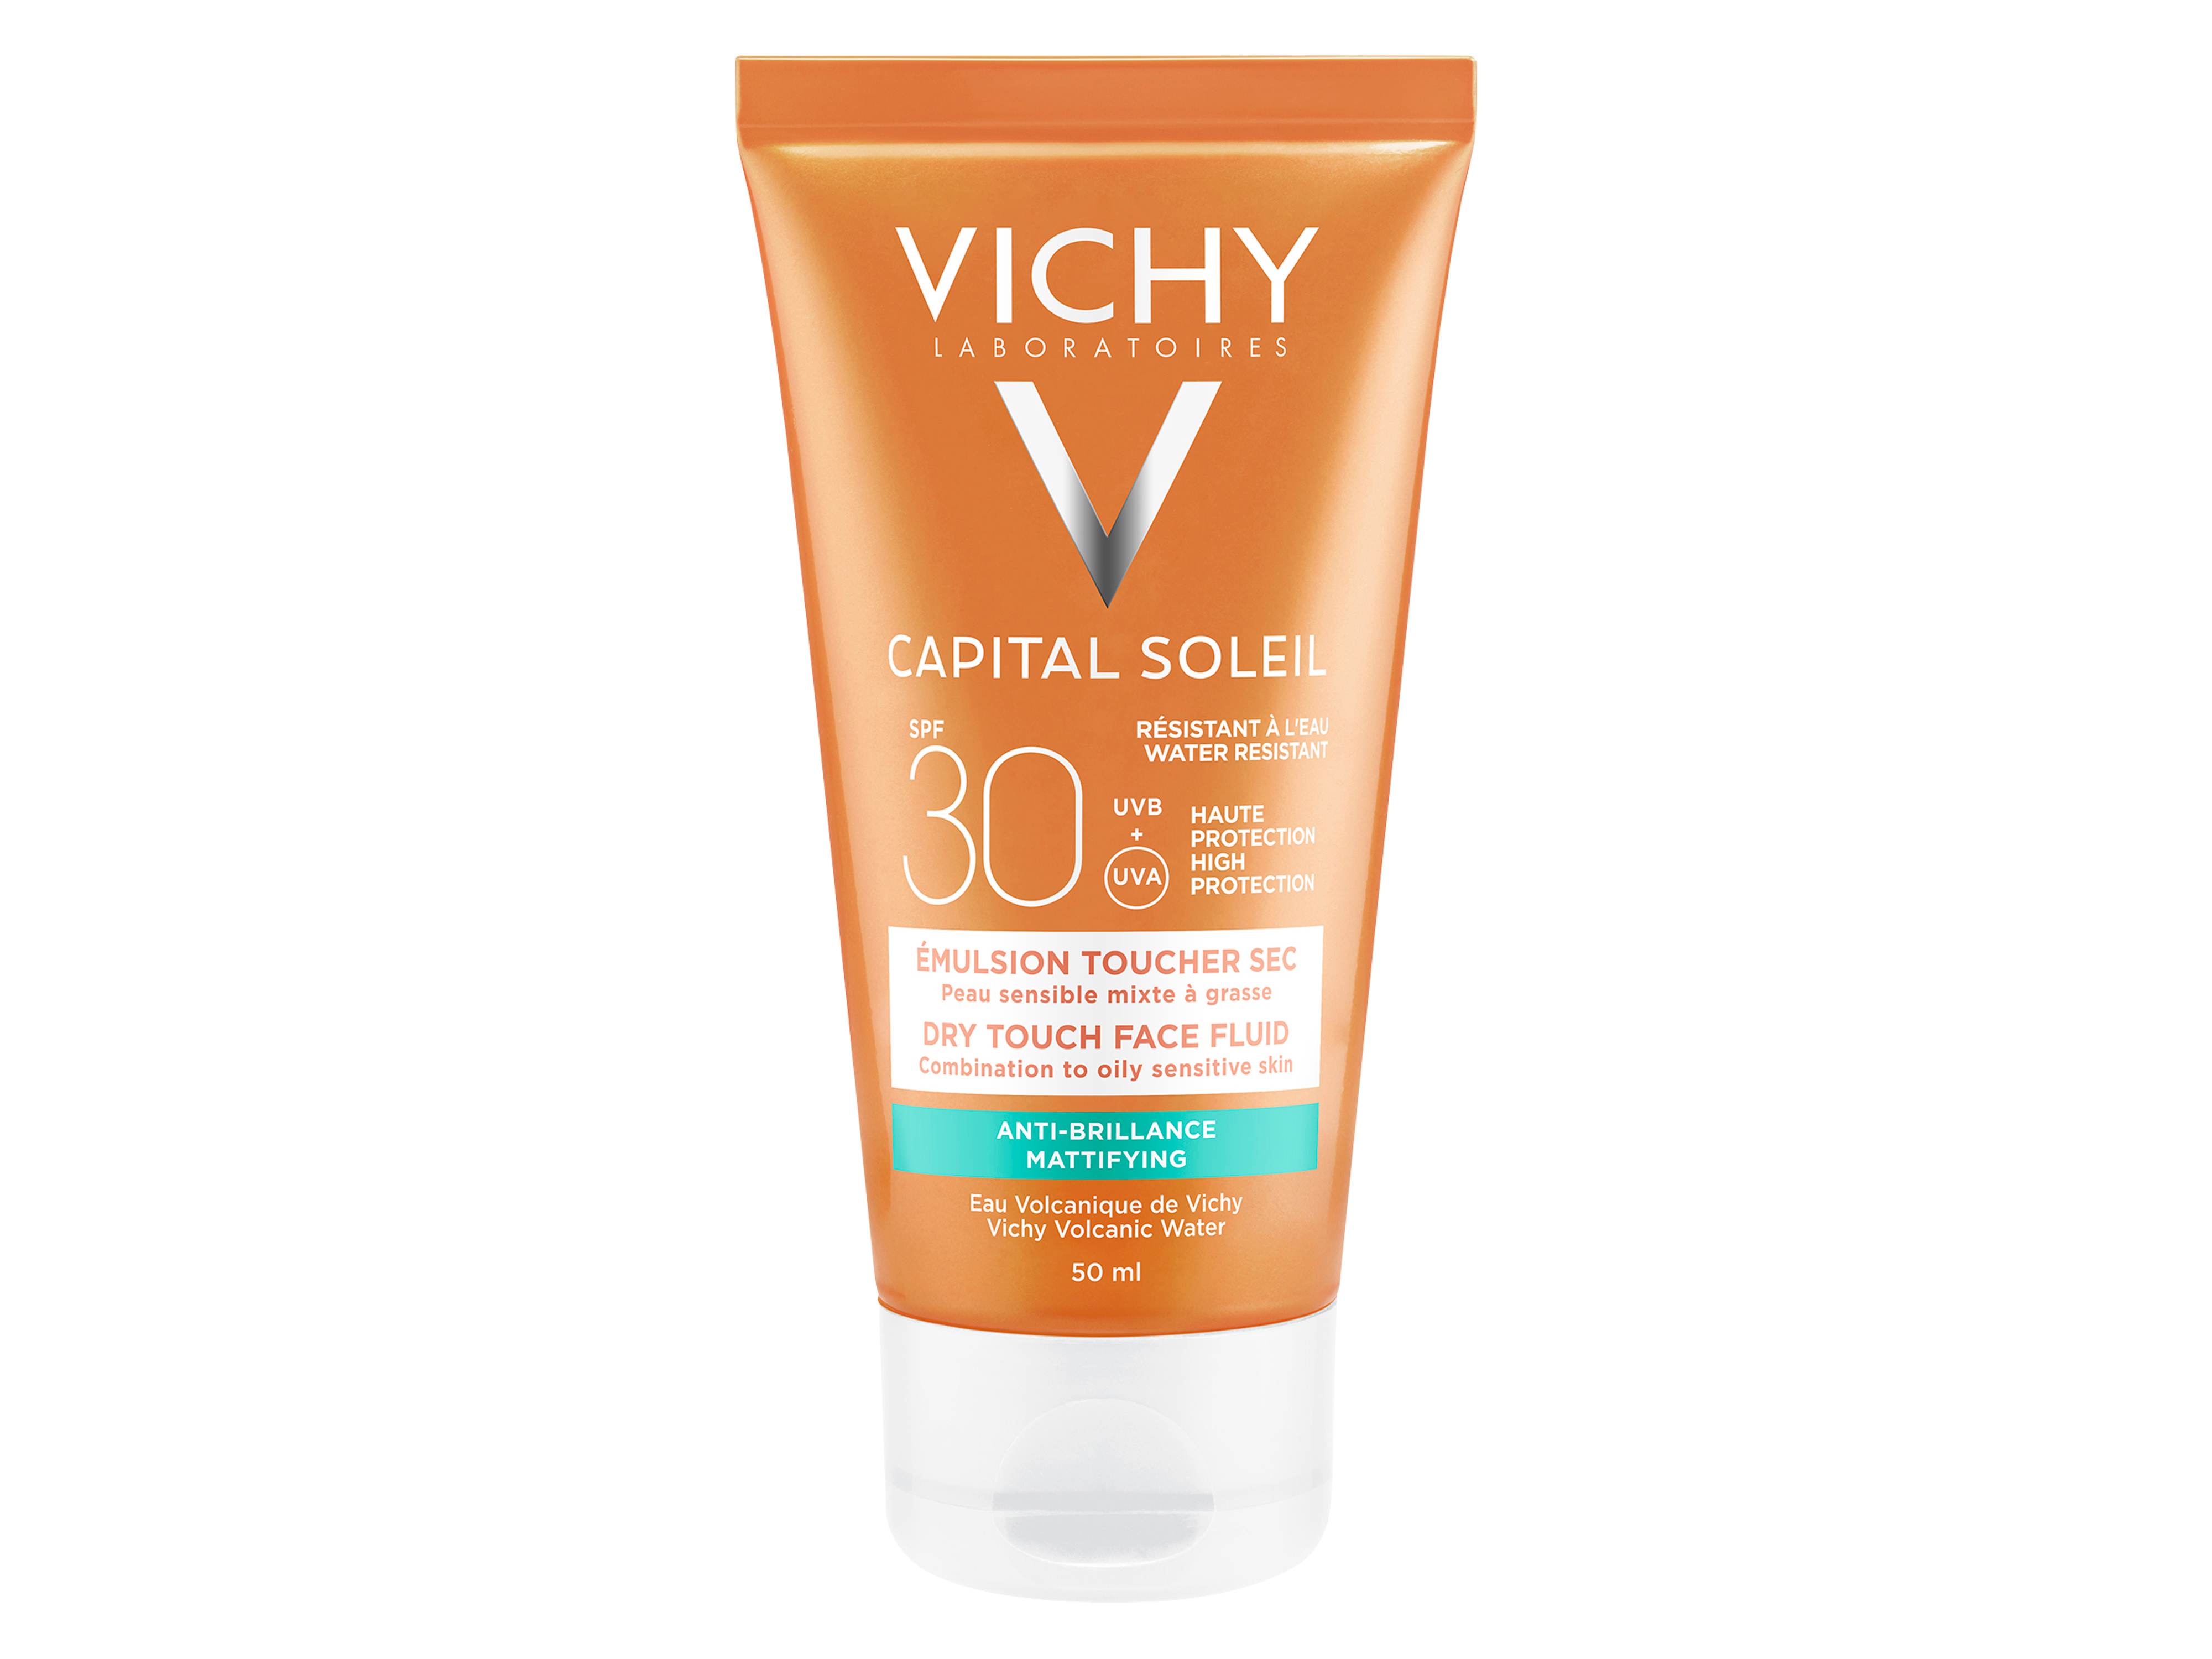 Vichy Capital Soleil Dry Touch Face, SPF 30, 50 ml